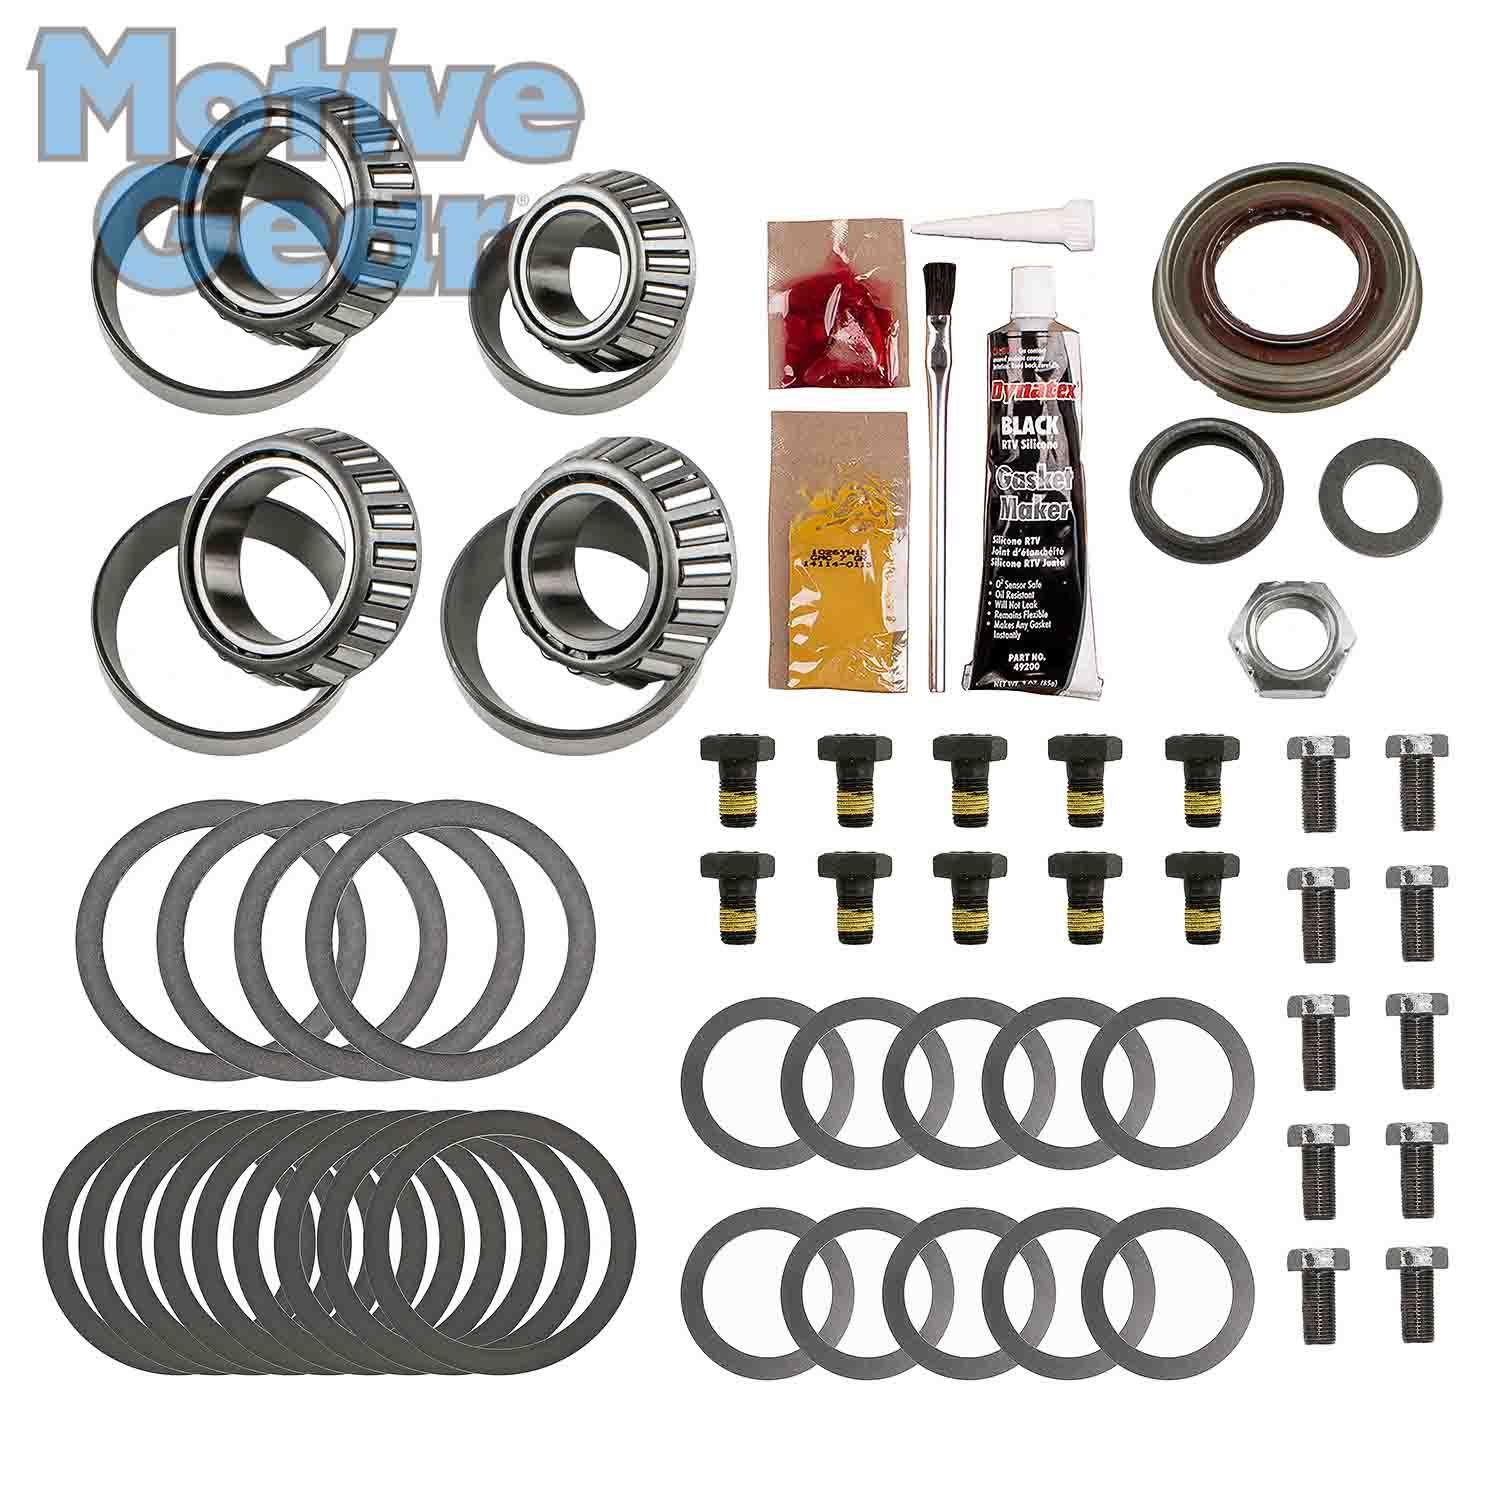 RA28RJKMKT Motive Gear/Midwest Truck Differential Ring and Pinion